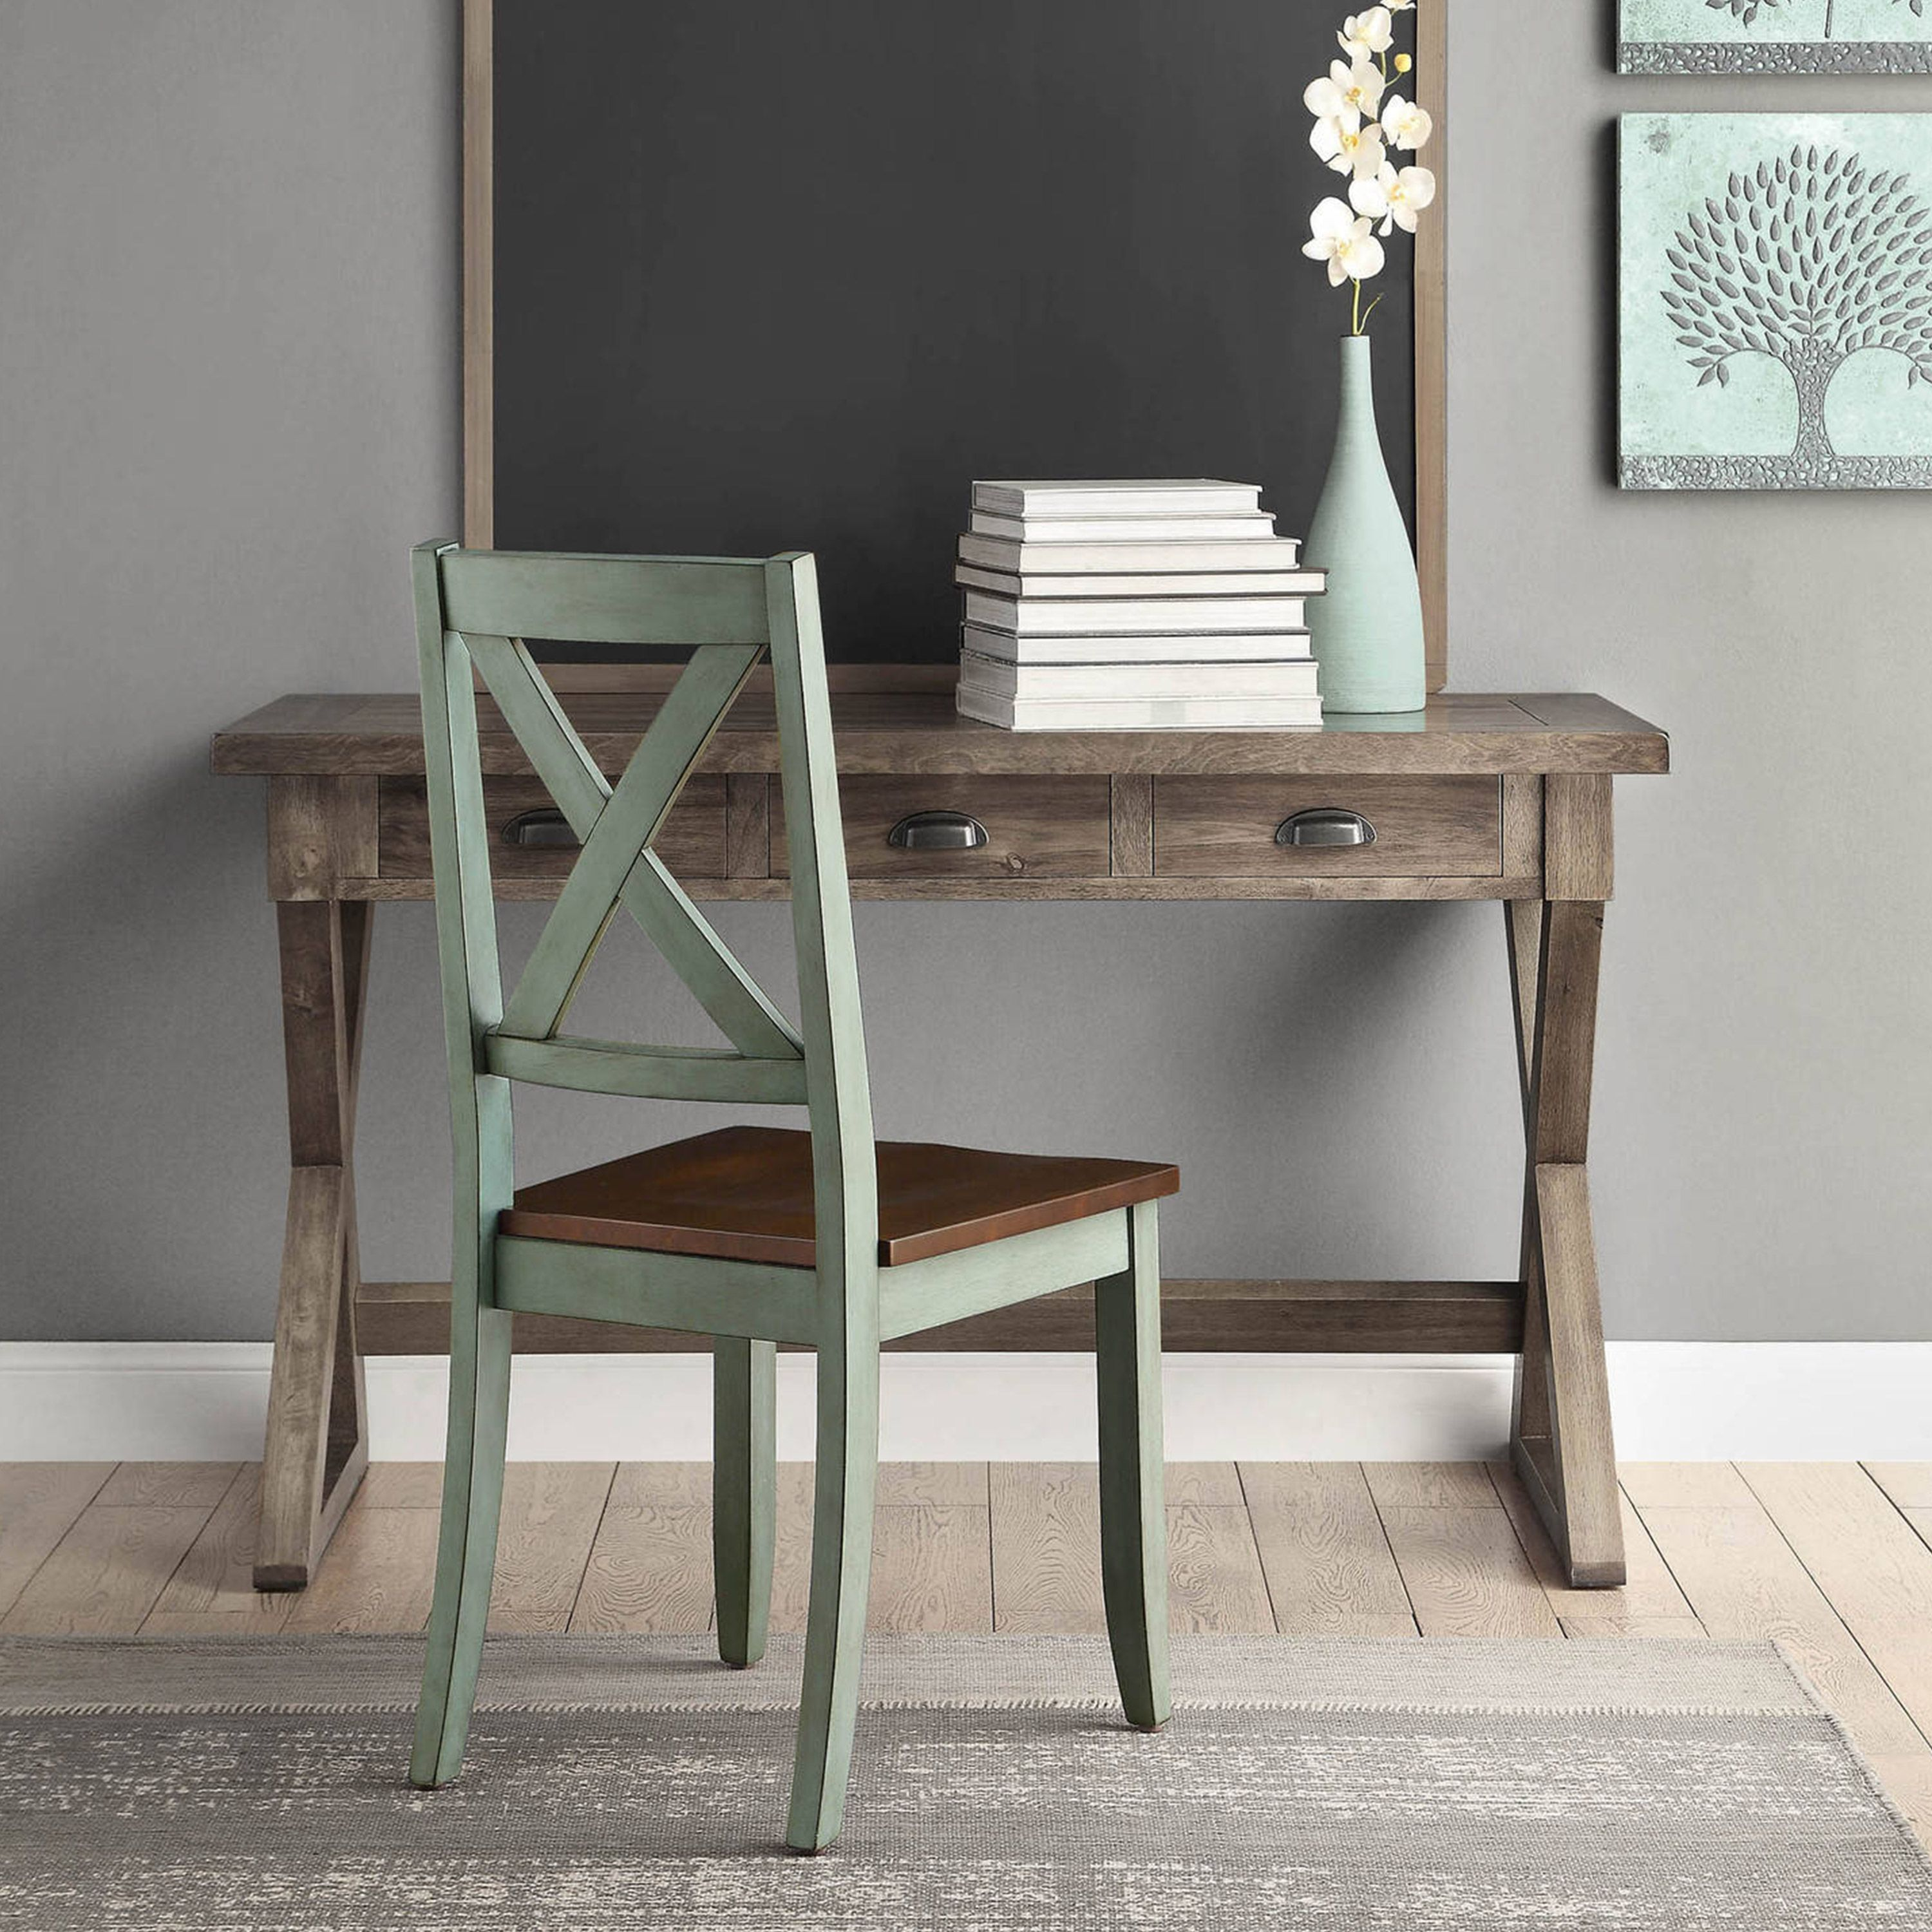 2a22db4af3940247fd6c09eeef675794 - Better Homes & Gardens London Faux Dining Chair